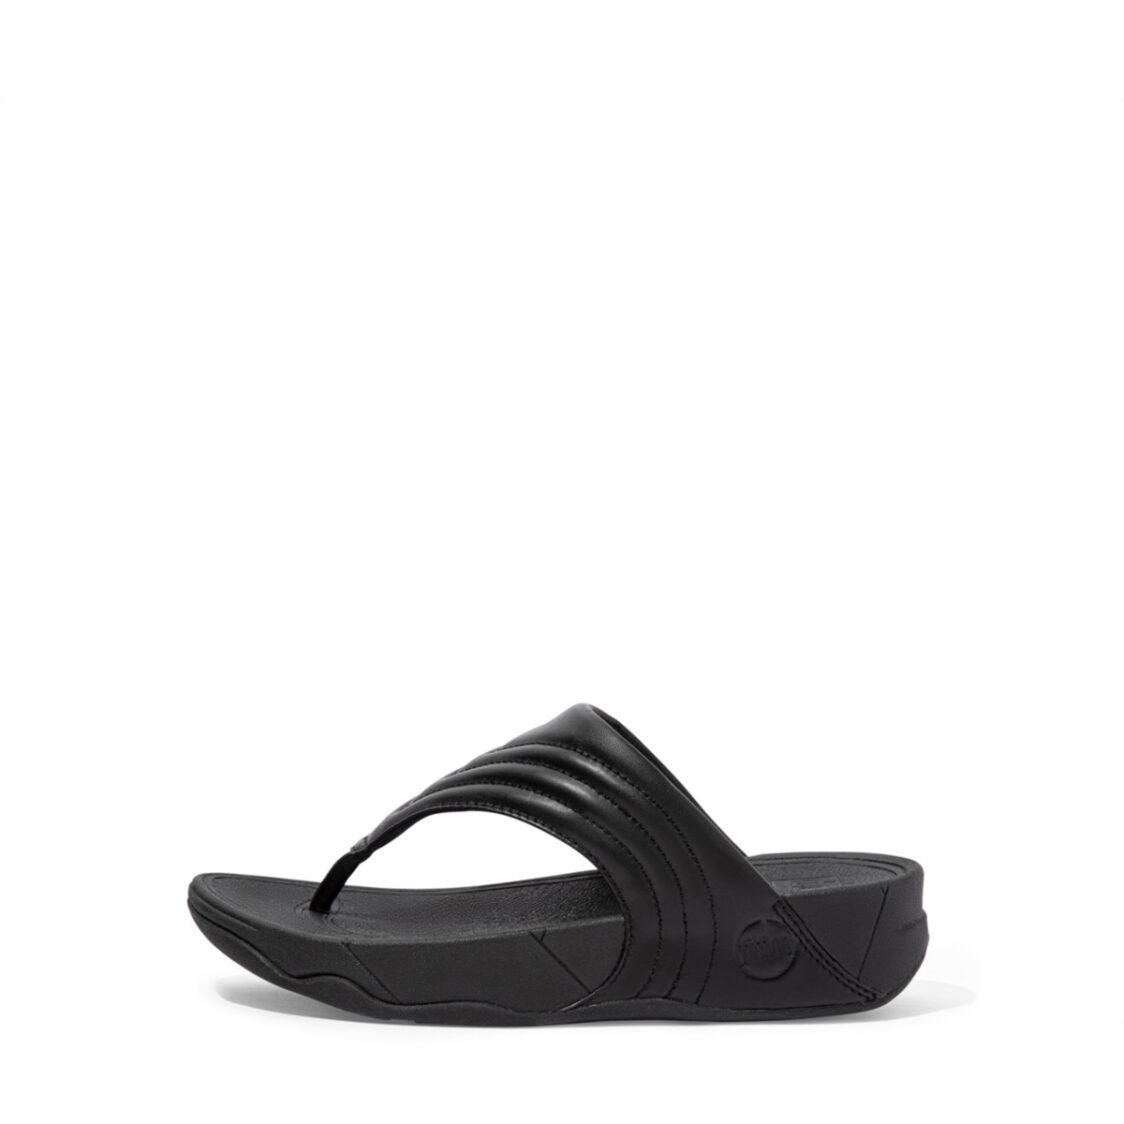 Fitflop Walkstar Leather Toe-Post Sandals All Black Dx5-090